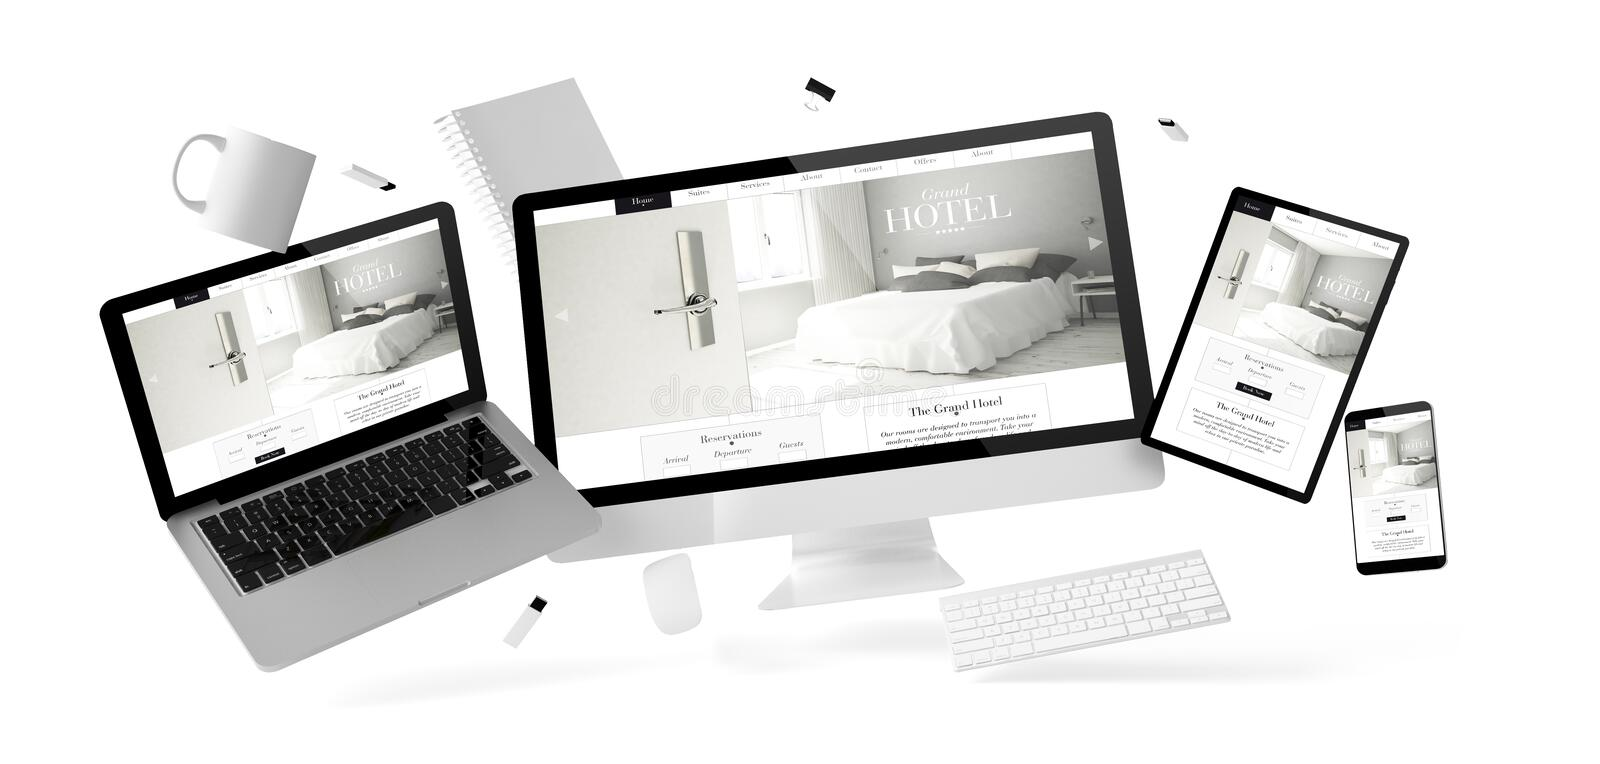 office stuff and devices floating with grand hotel website stock illustration